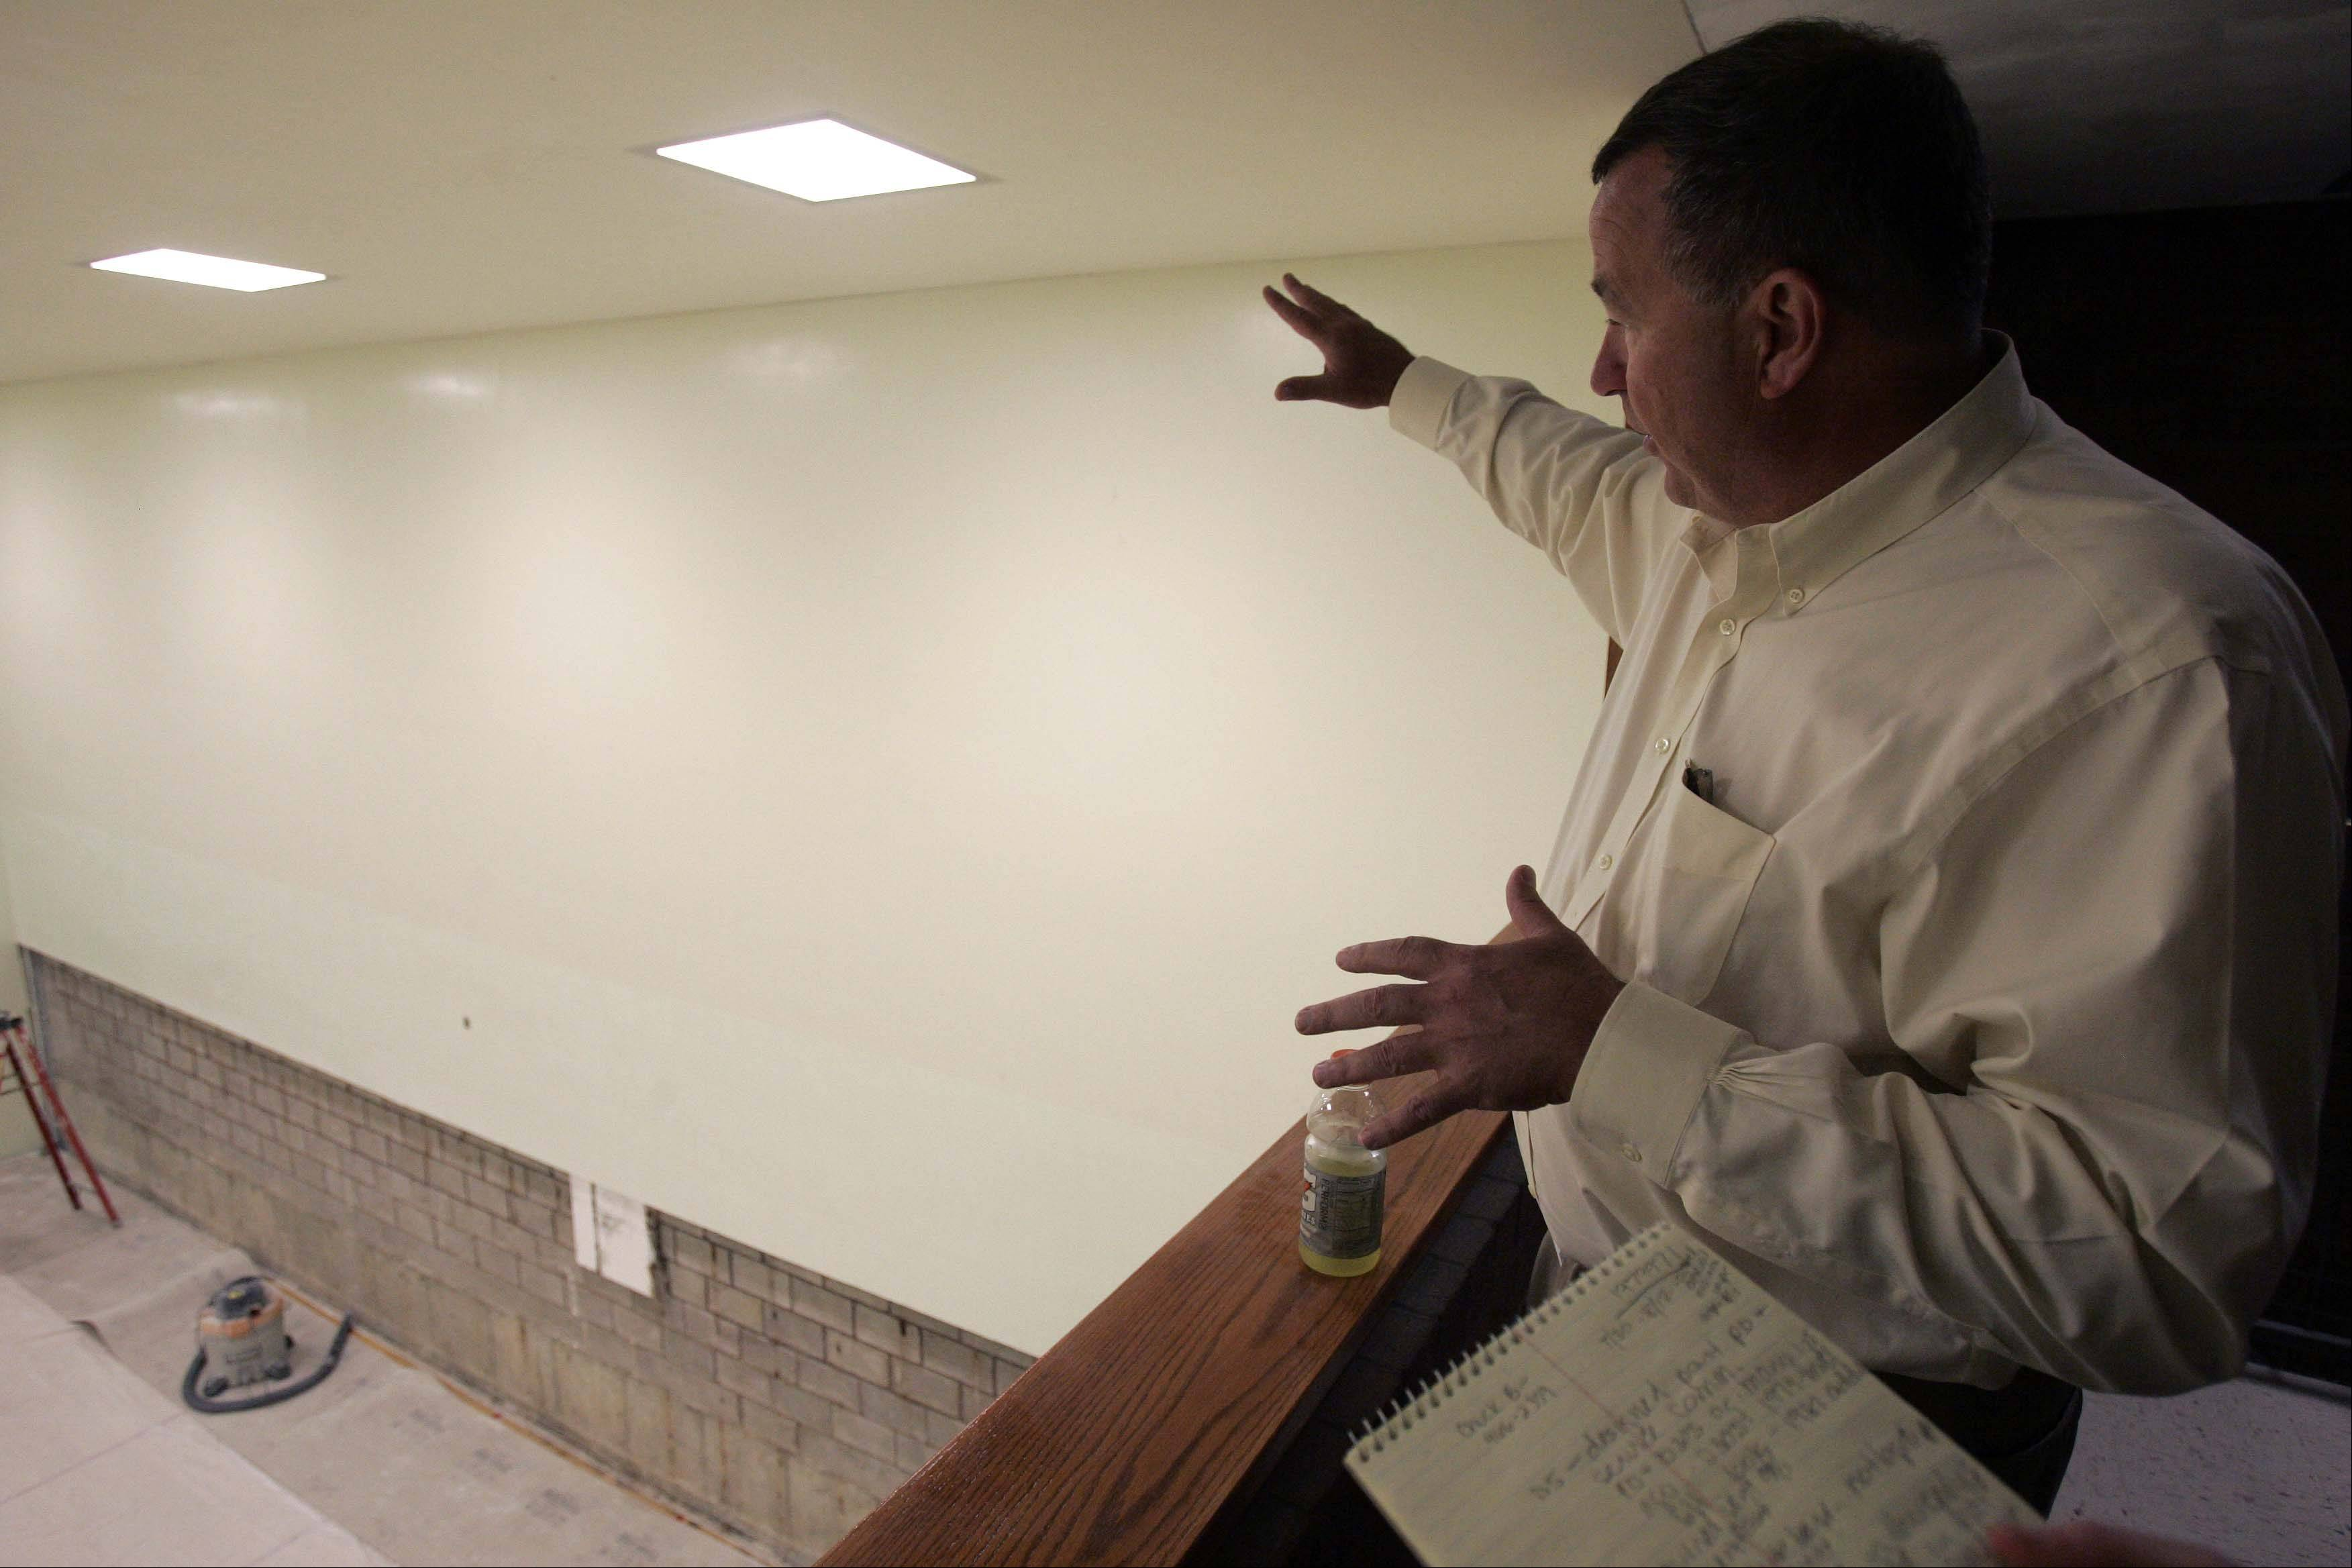 St. Charles School District 303 Superintendent Don Schlomann describes Thursday how and where mold was discovered during scheduled maintenance this summer at the Norris Recreation Center. The mold was discovered in the north wall of racquetball court 3, which was part of an addition in 1981 to the original 1974 building. The rec center is connected to St. Charles East High School, which was the site of a major mold problem in 2001.